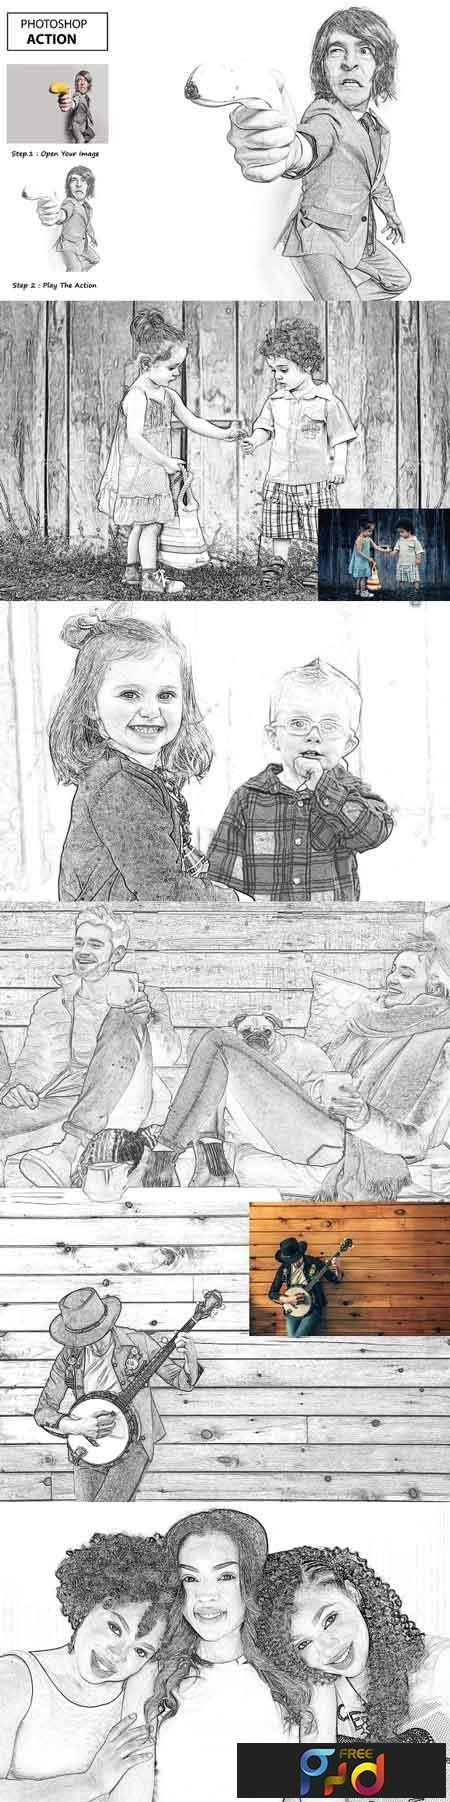 Pencil sketch photo shop action